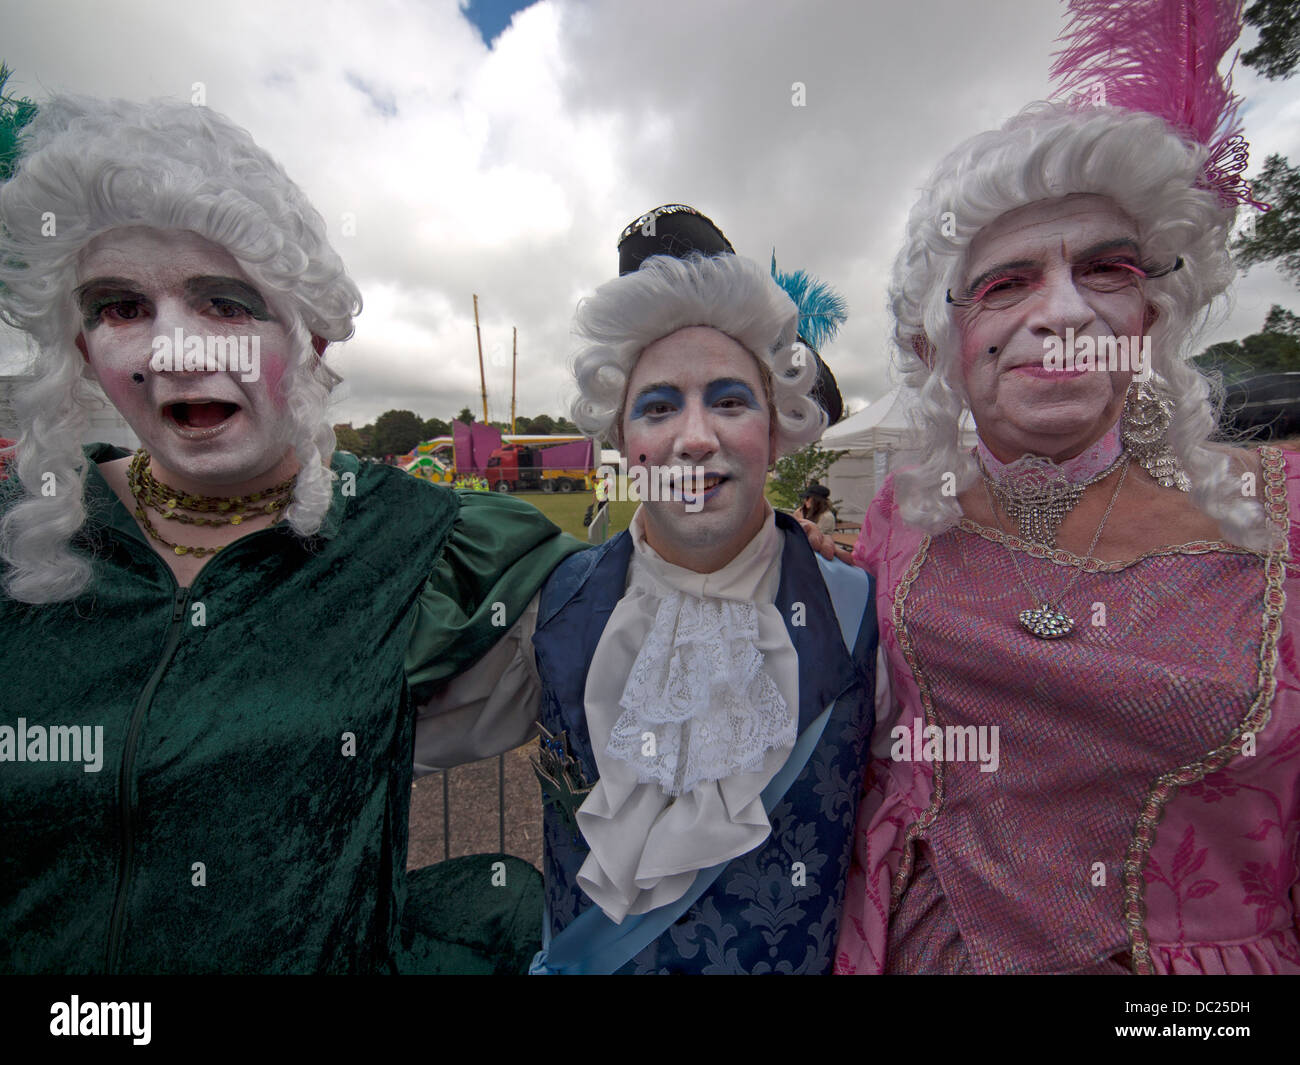 Dressed up as aristocrats from the time of the French Revolution,revelers at Brighton Pride 013 - Stock Image